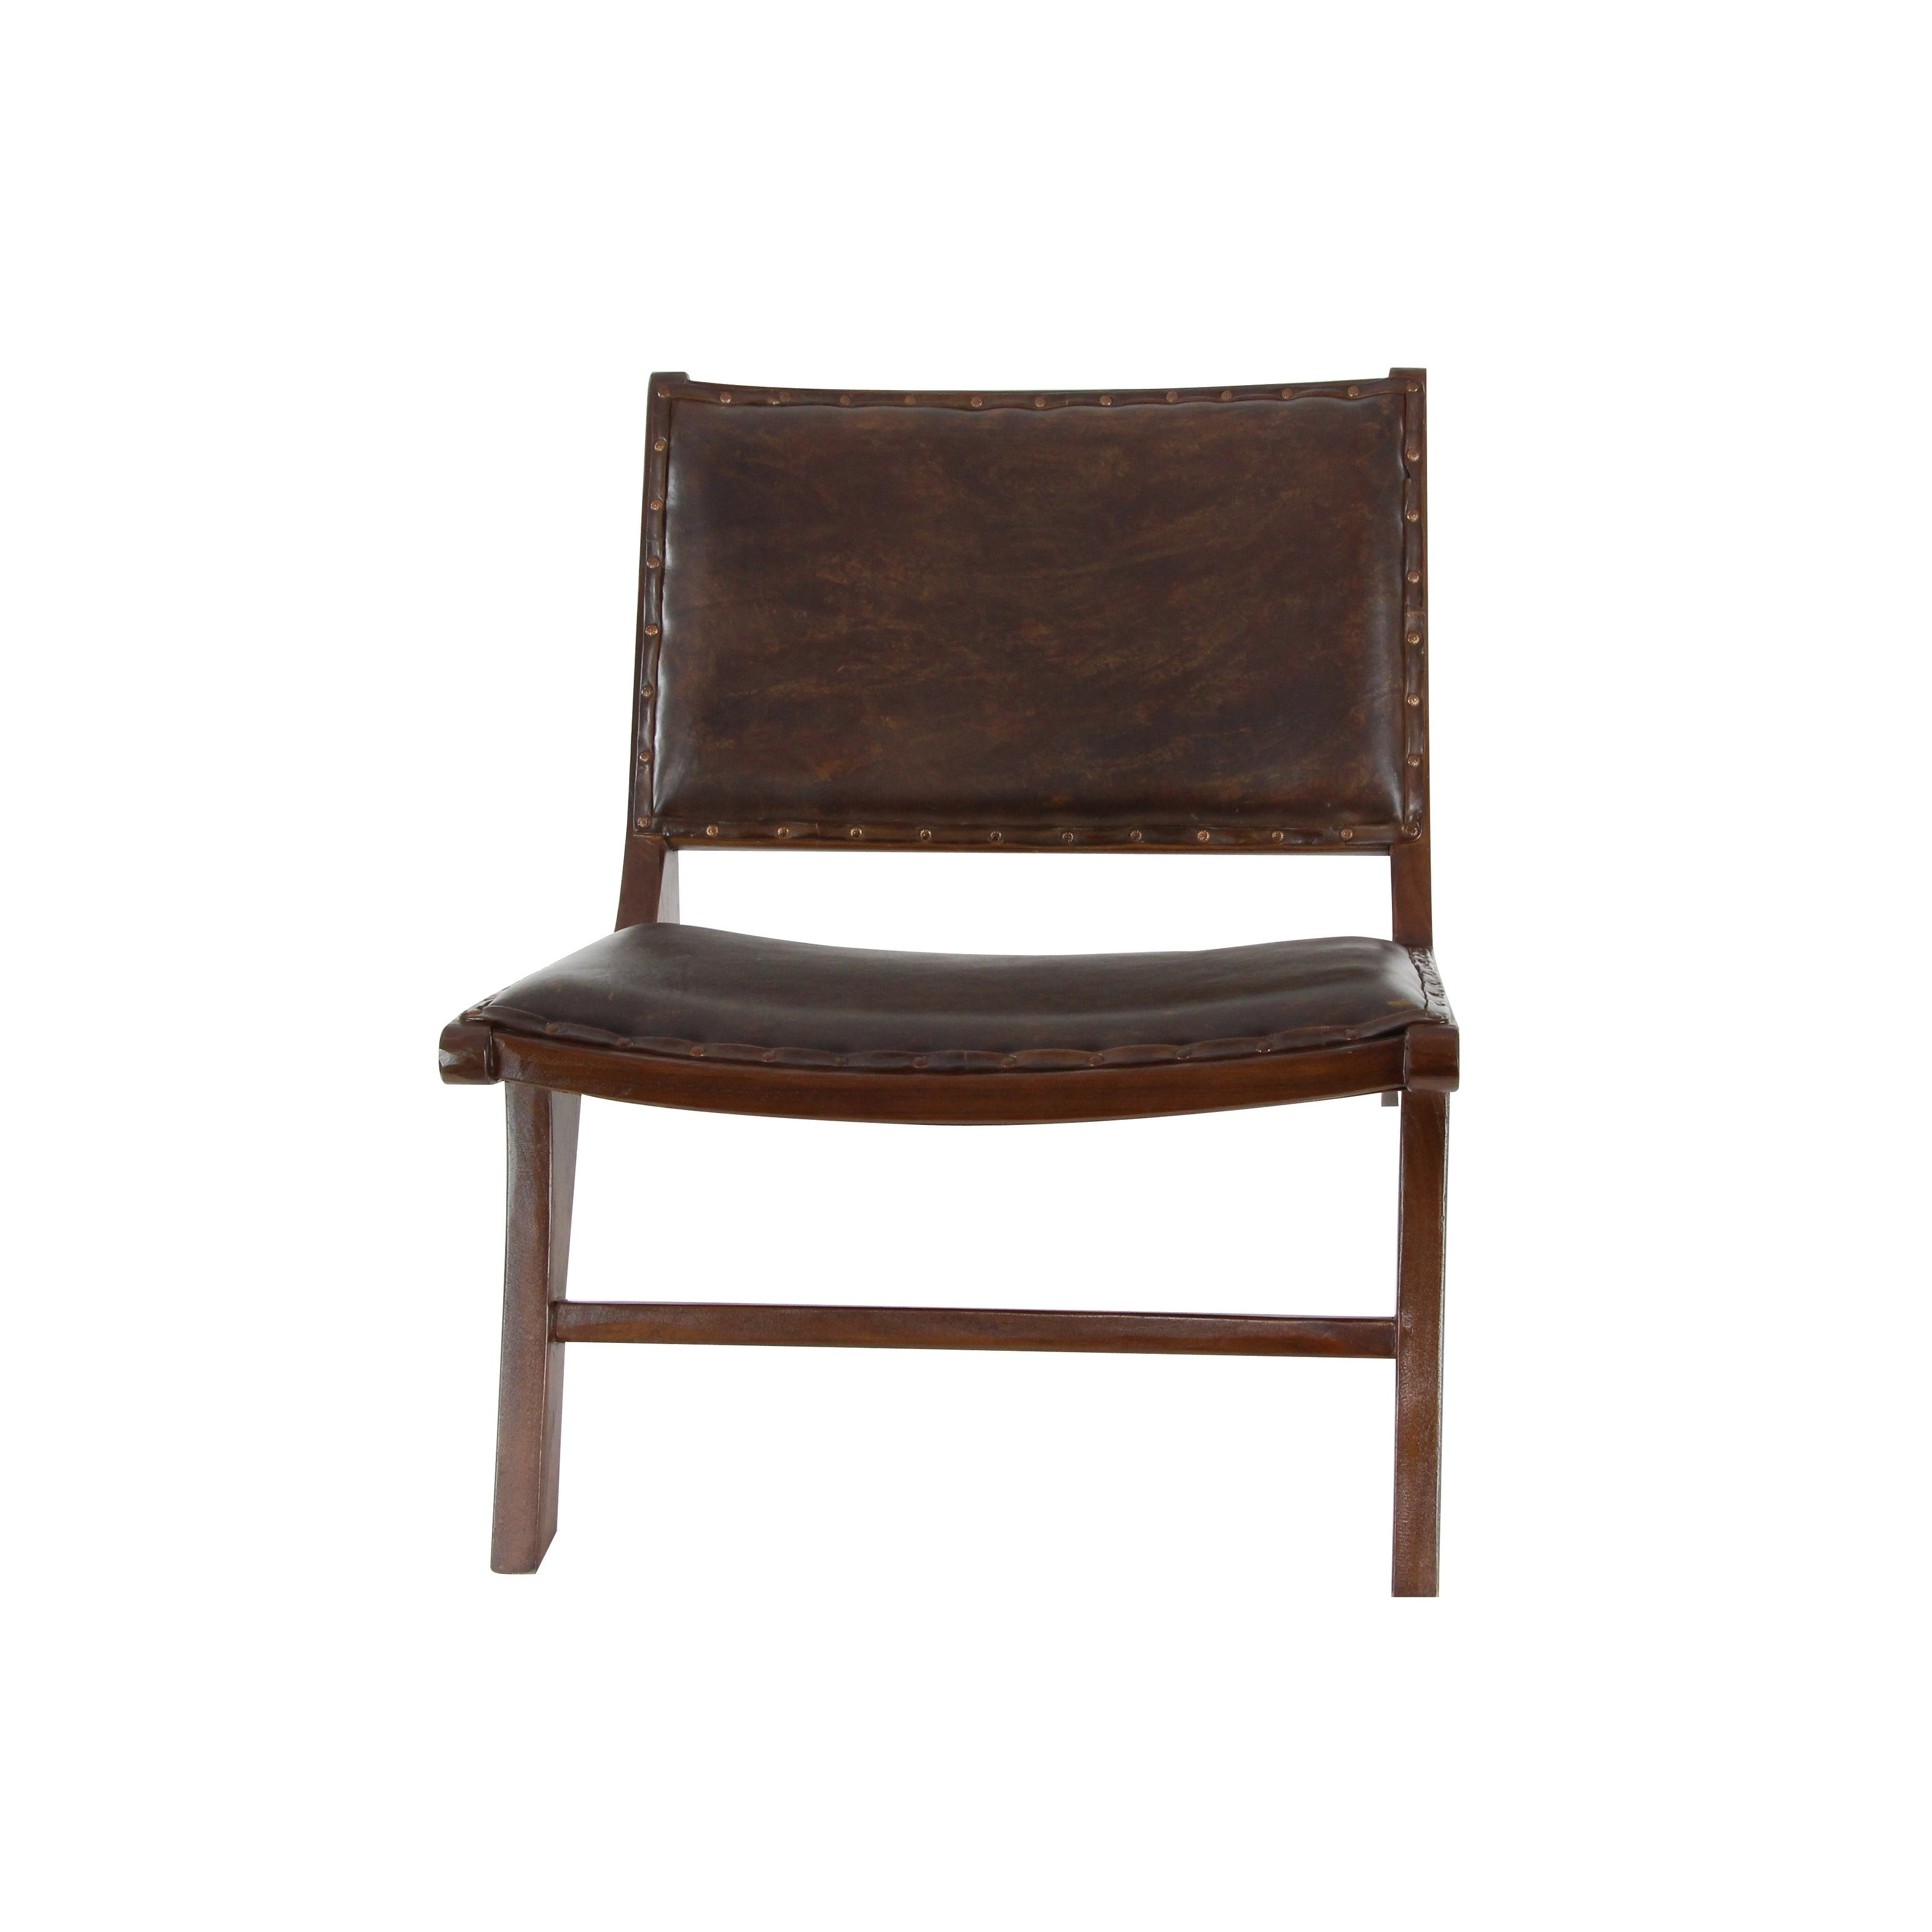 Incroyable Shop Traditional 27 Inch Wood And Leather Cushioned Chair By Studio 350    Free Shipping Today   Overstock.com   17240567